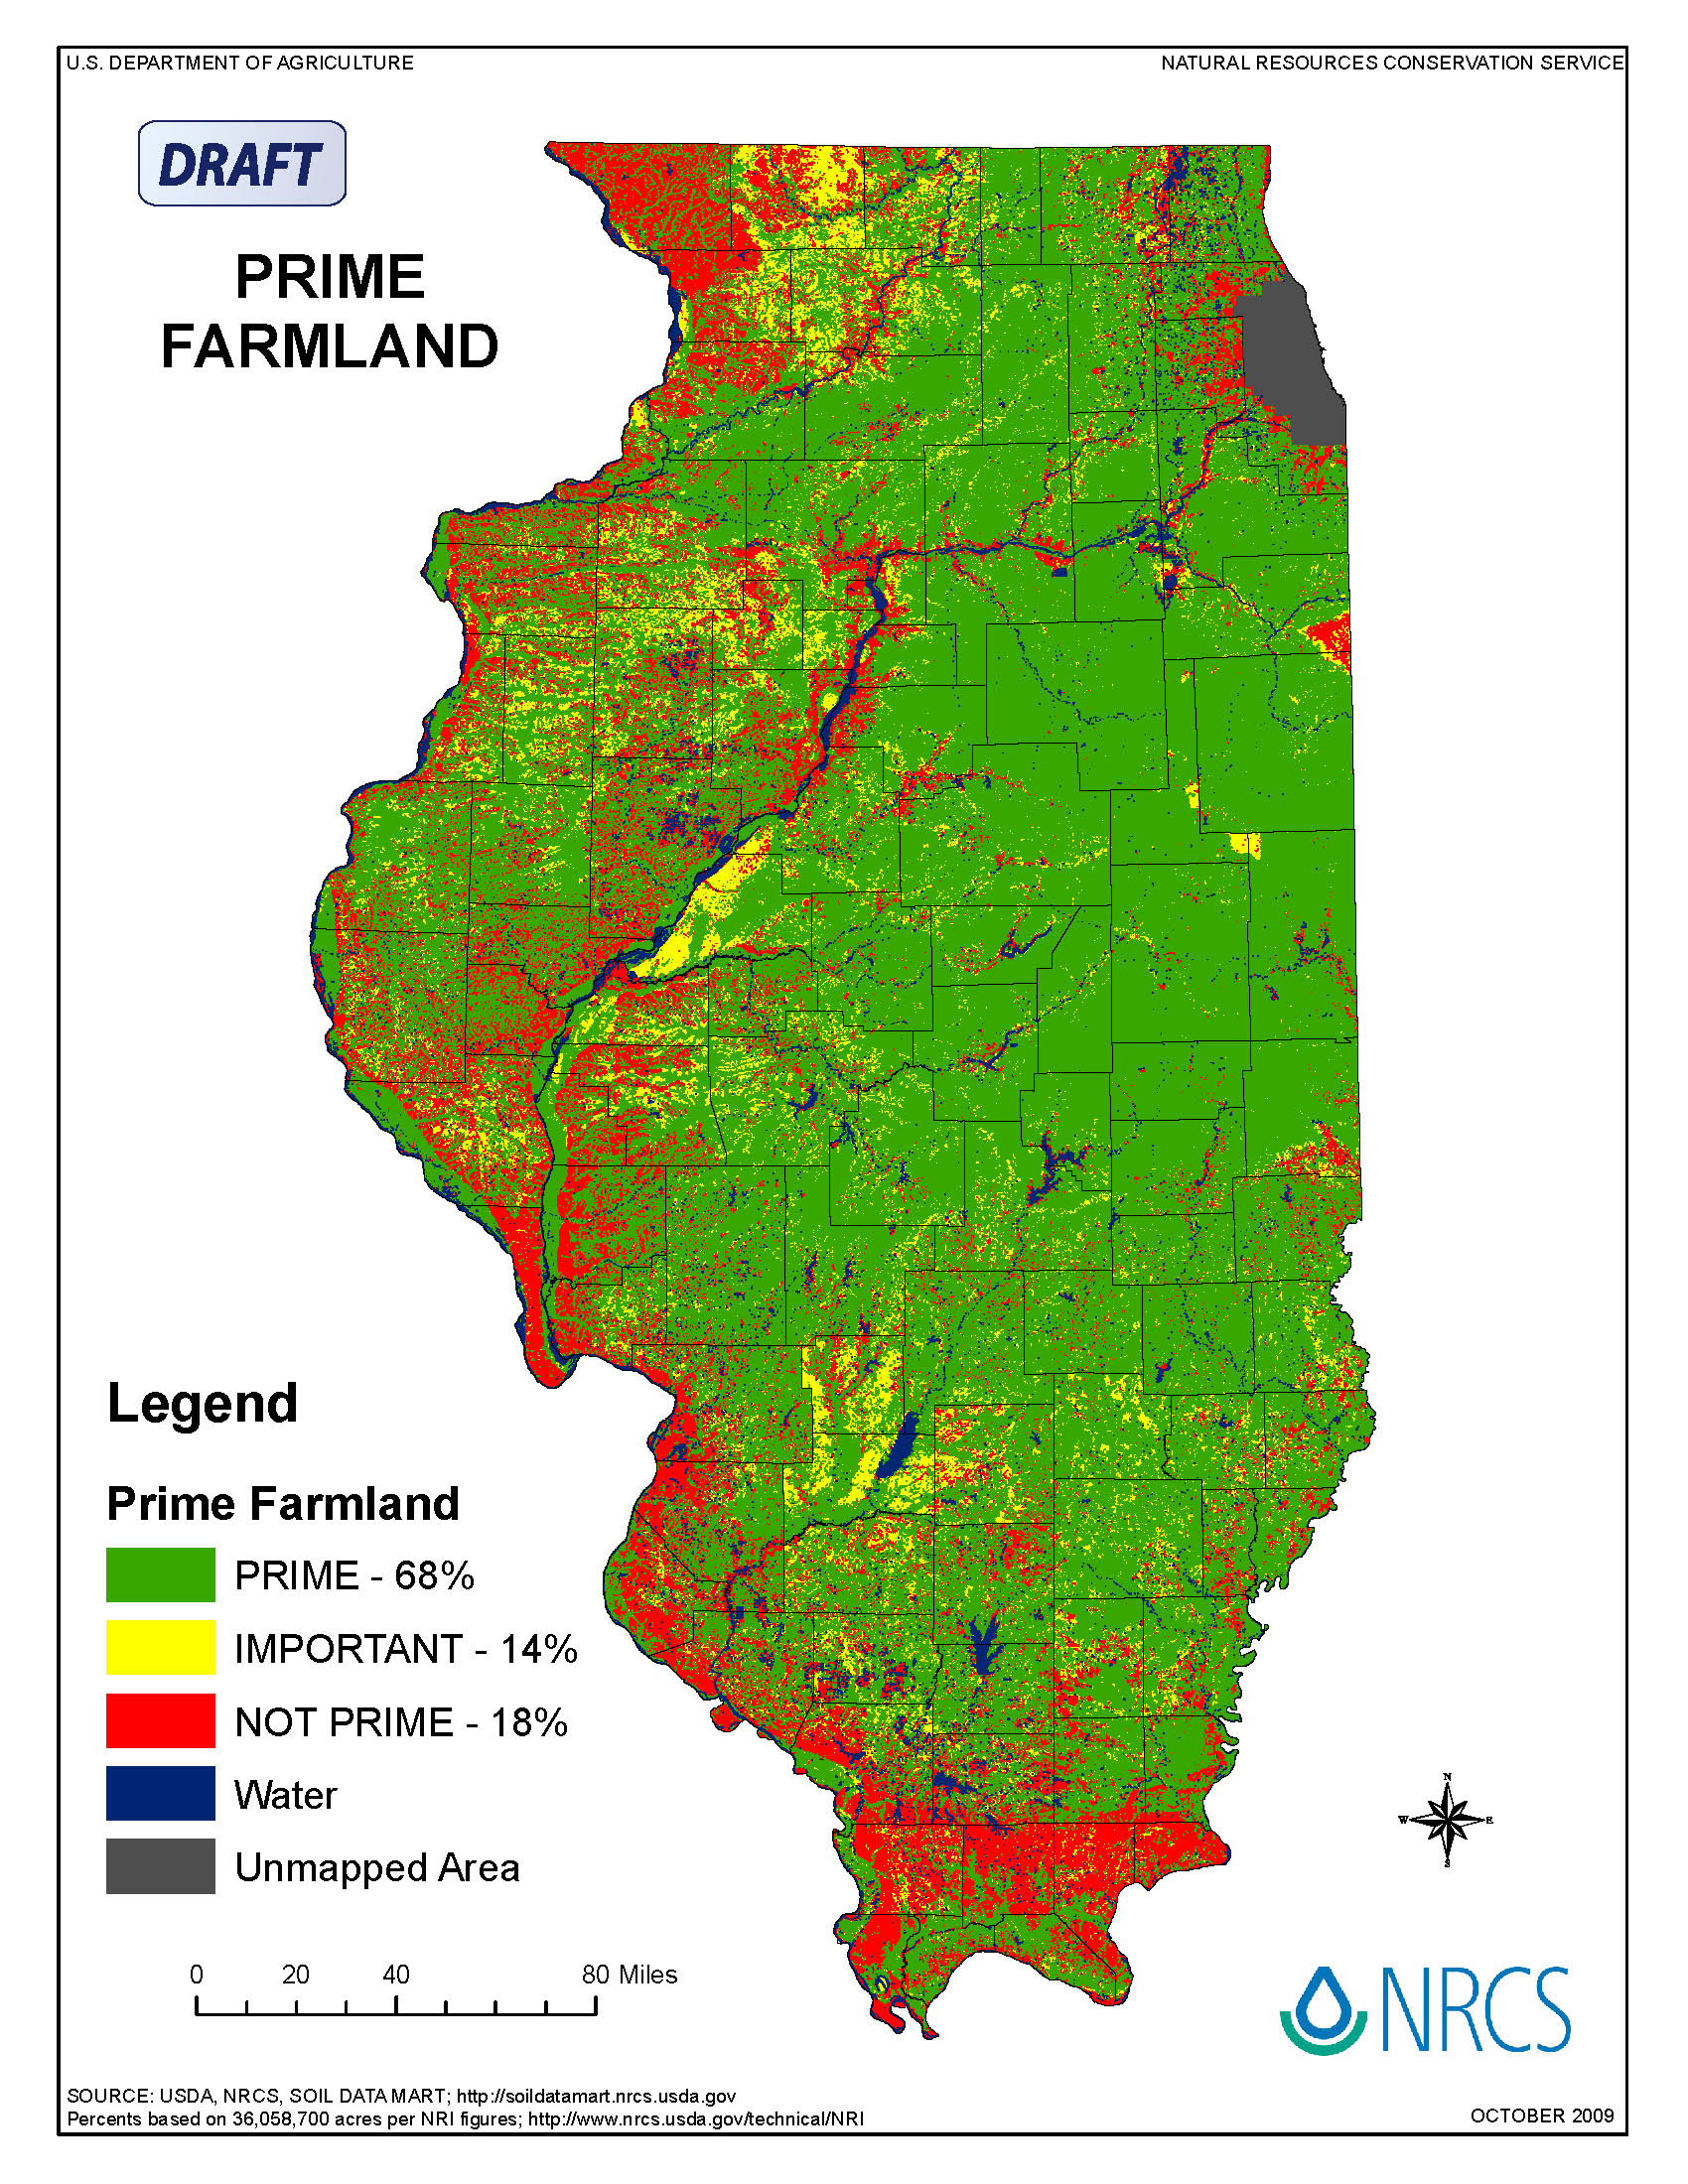 Illinois Suite Of Maps NRCS Illinois - Land use classification map us